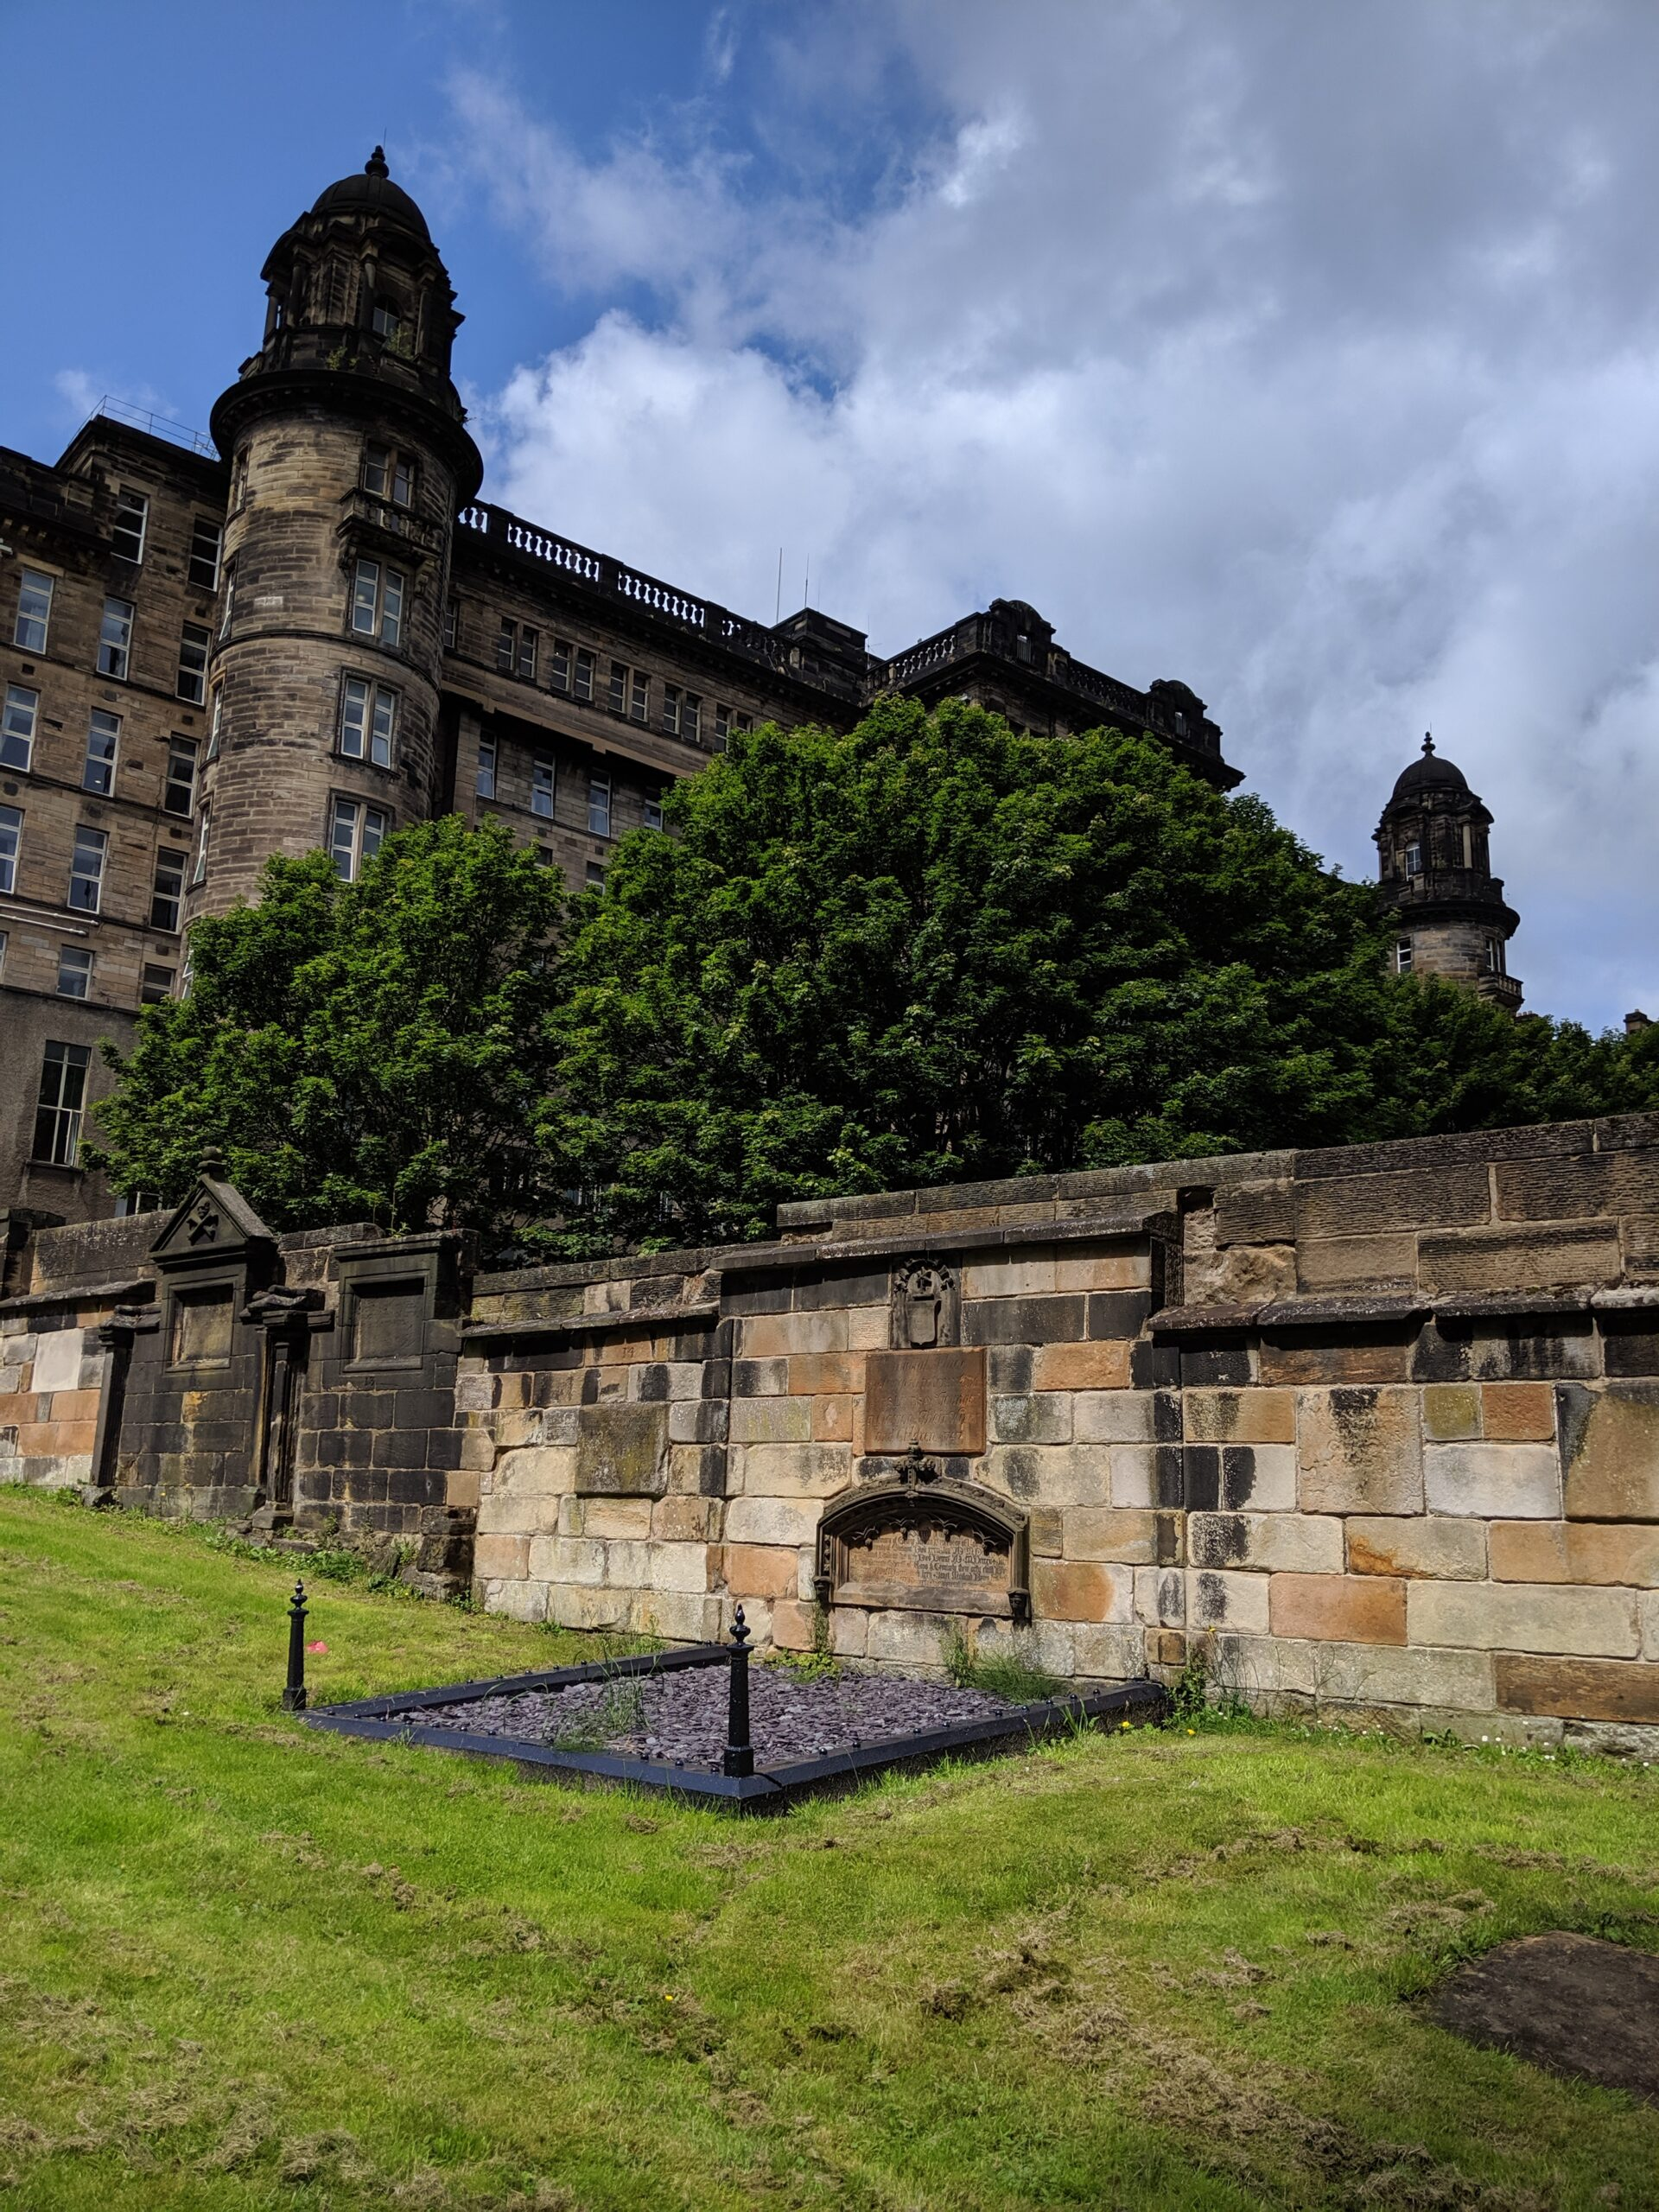 Large multistory stone building, with a stone wall and a burial plot in the foreground